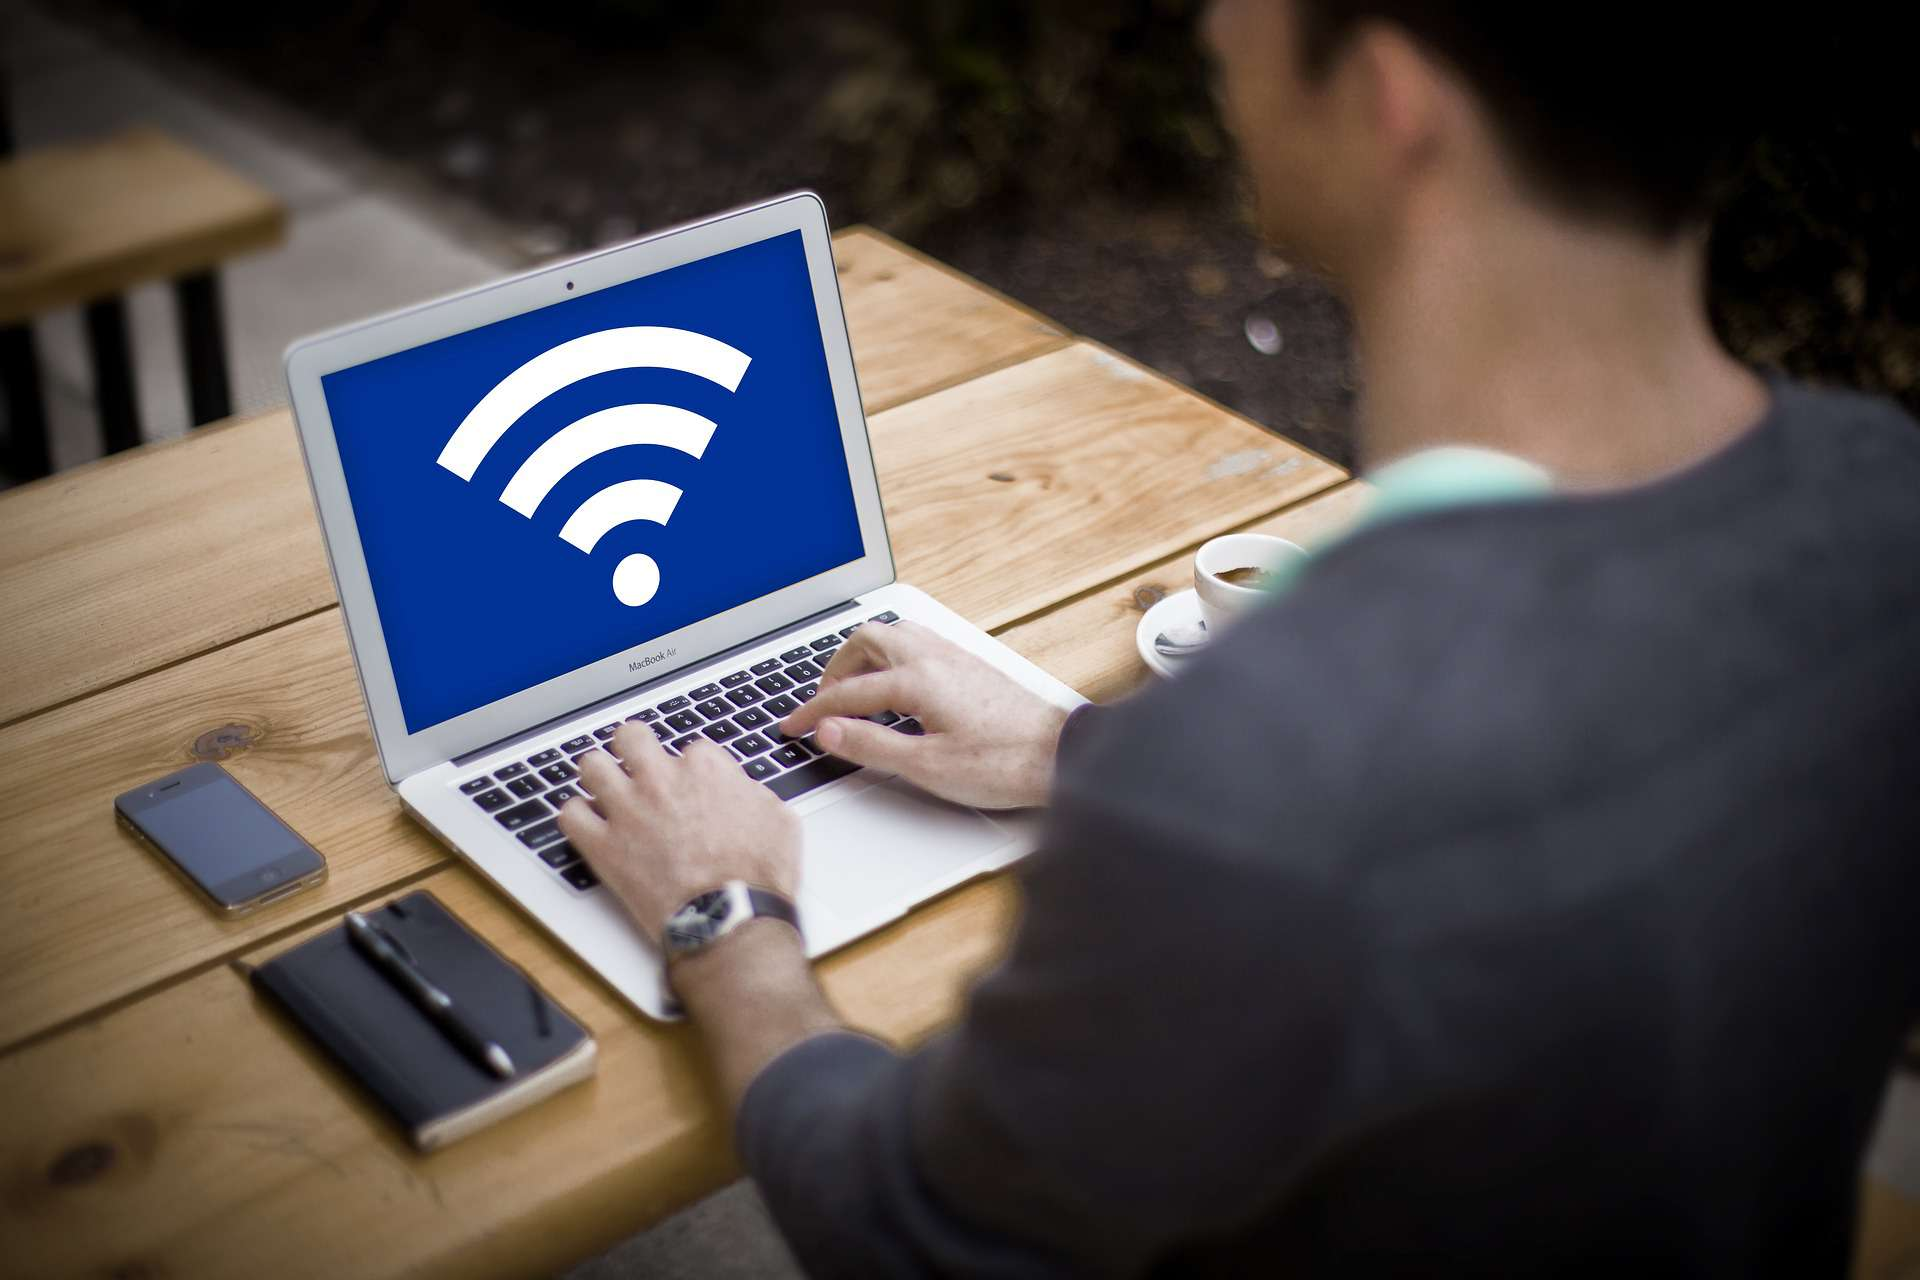 What to Do When Your Wi-Fi Network Is Not Showing Up